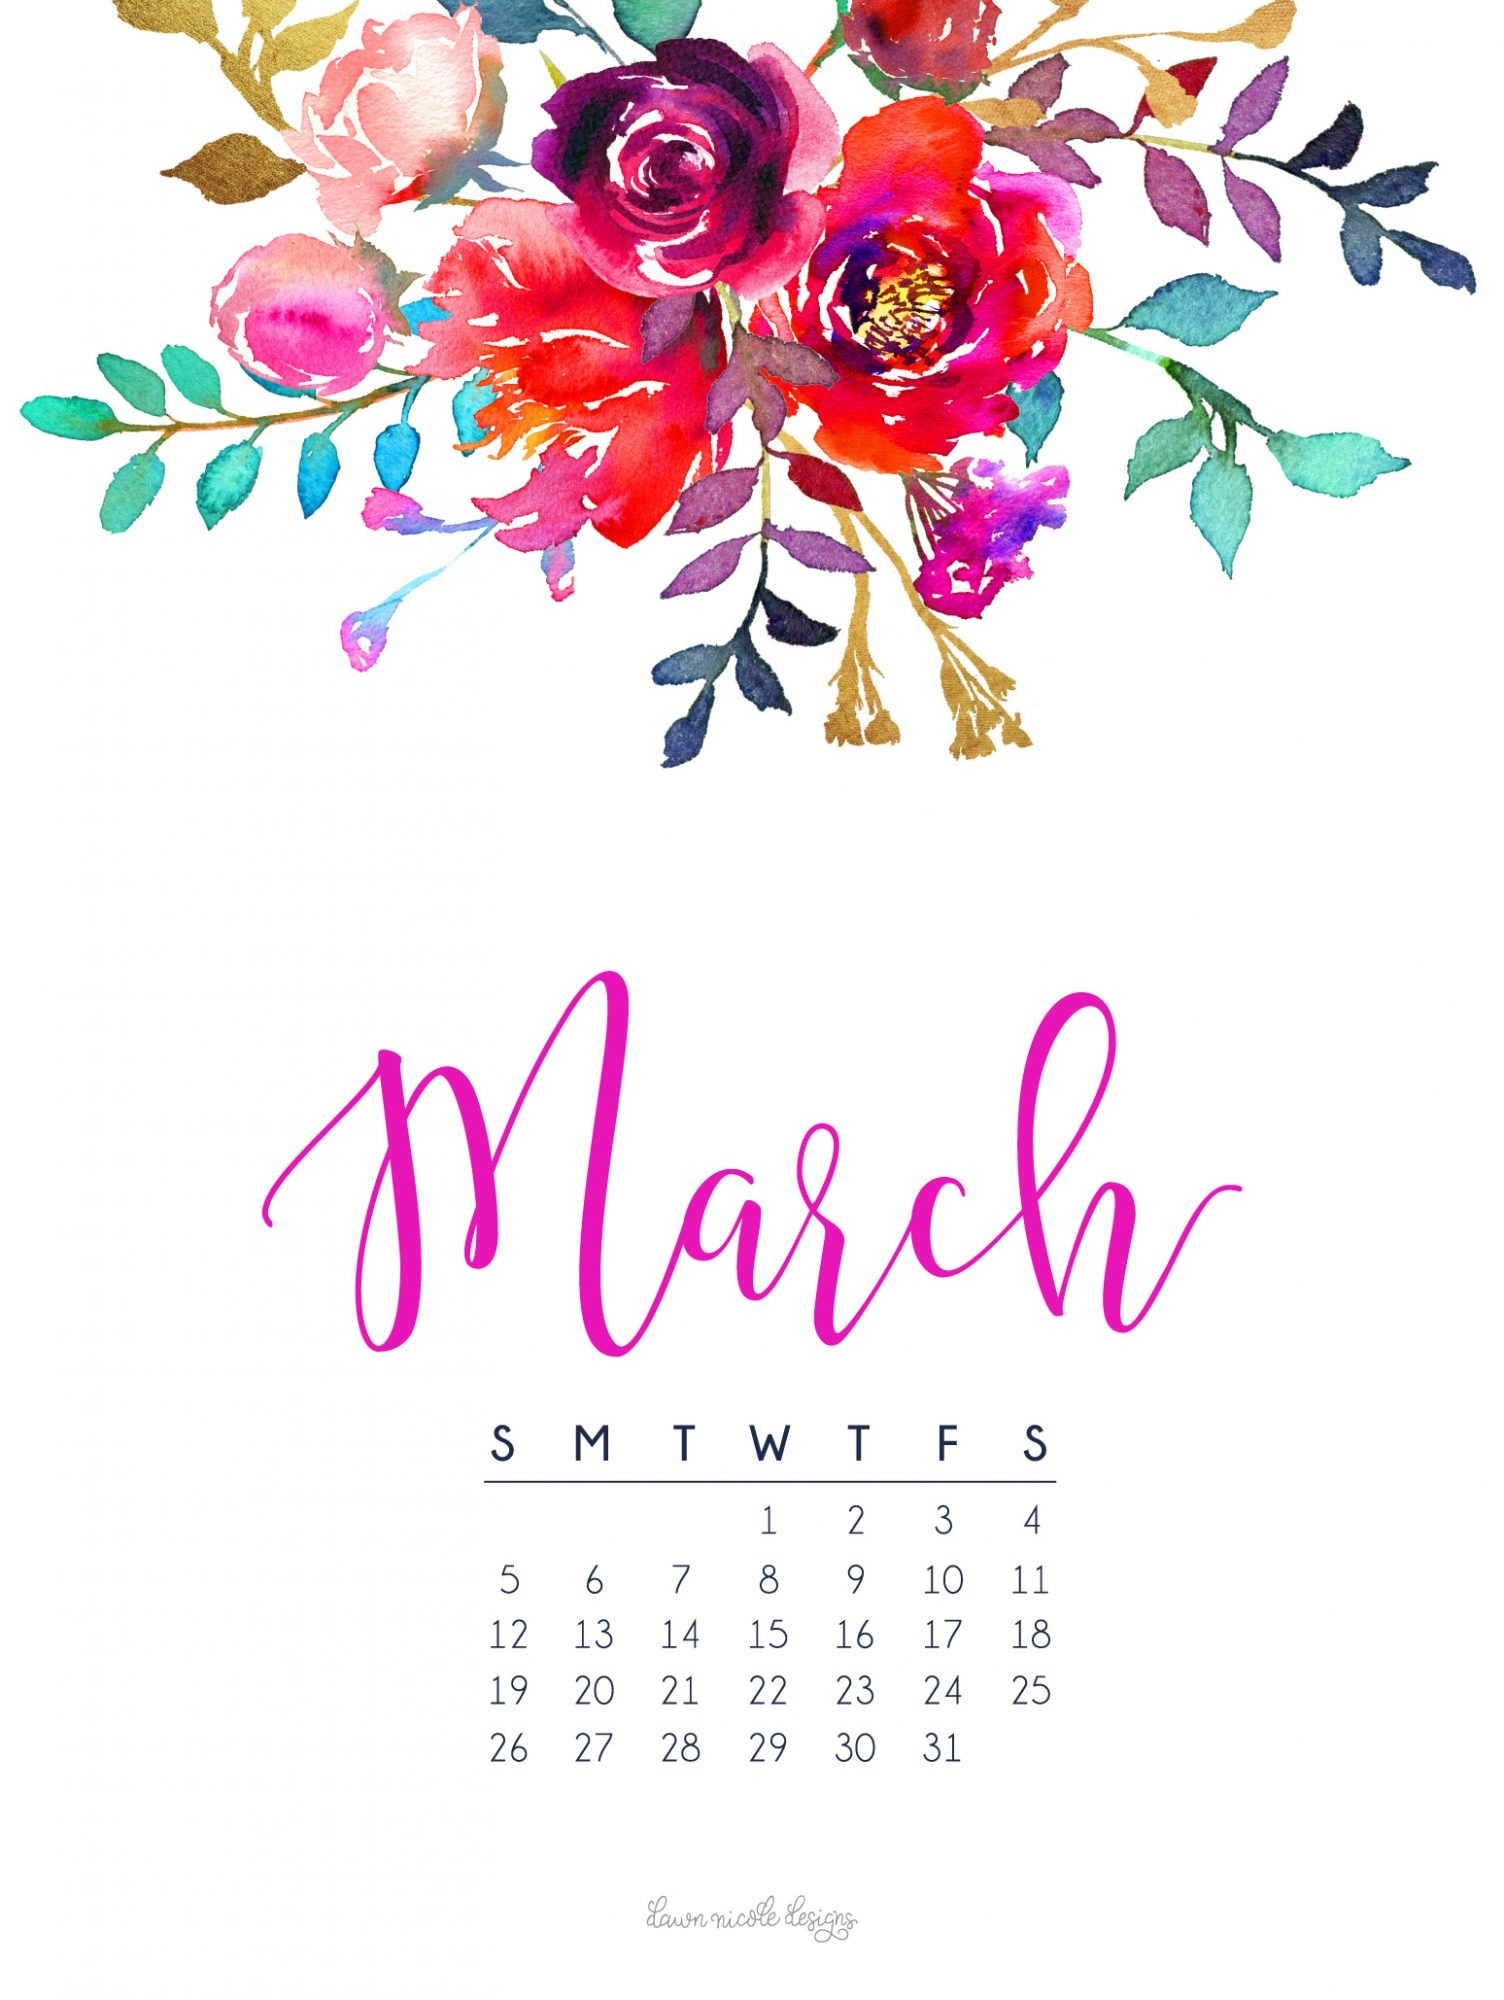 Calendar Desktop Wallpaper March : Desktop wallpapers calendar march  images